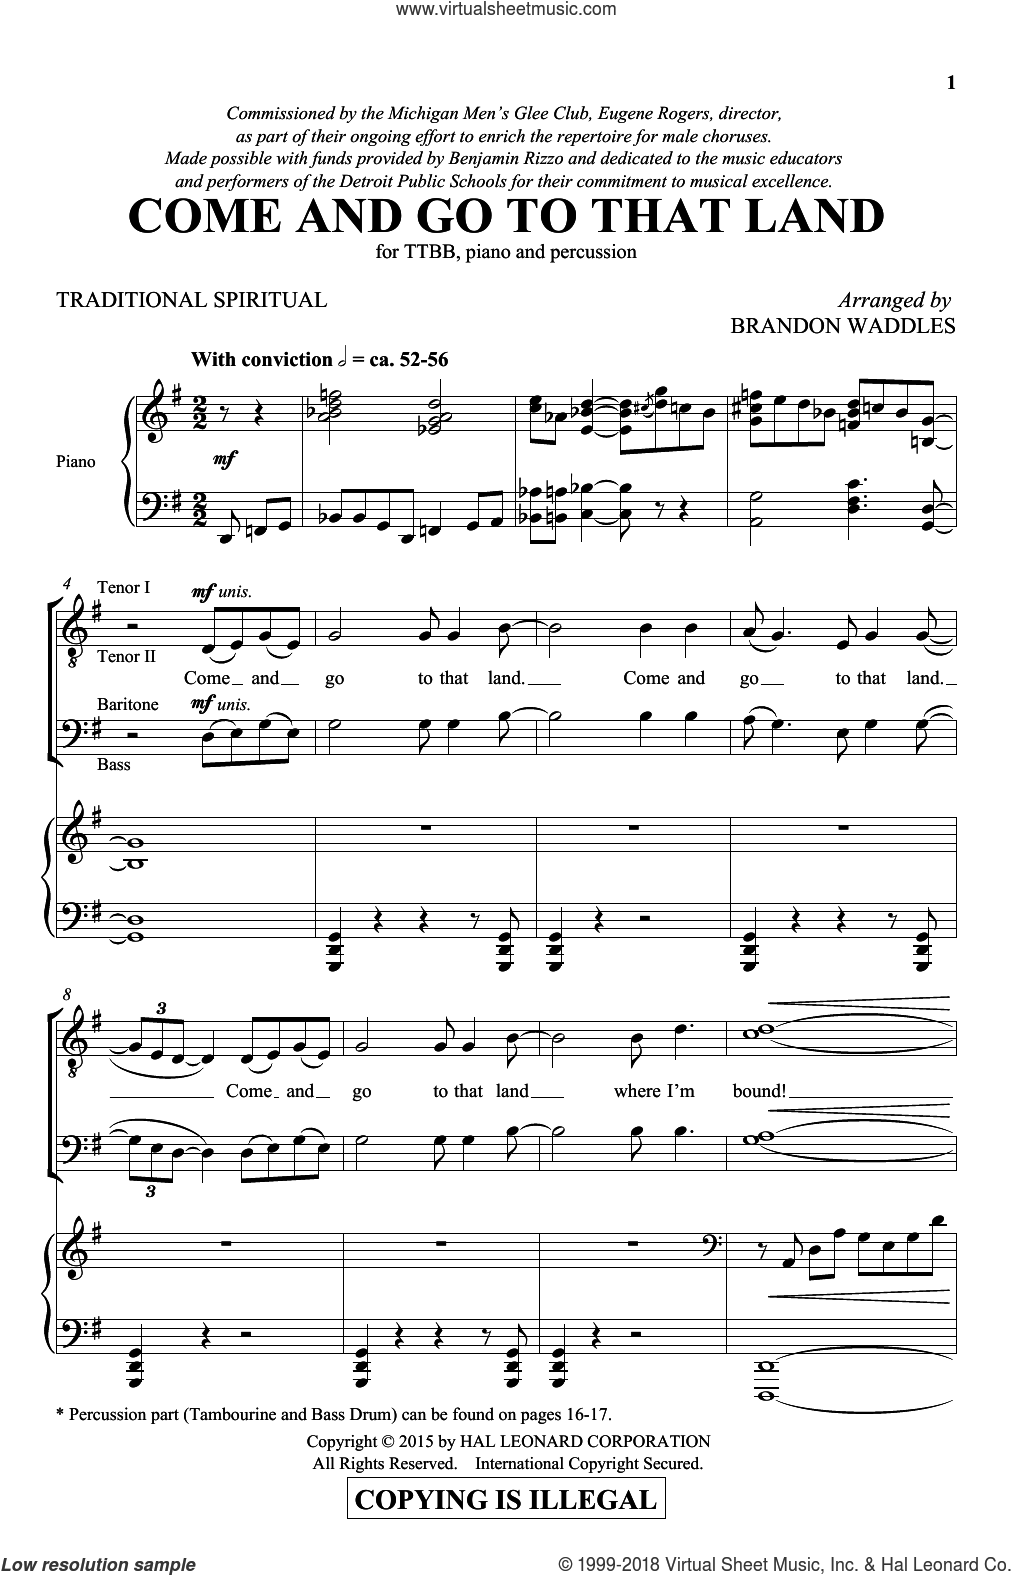 Come And Go To That Land sheet music for choir (tenor voice, bass voice, choir). Score Image Preview.